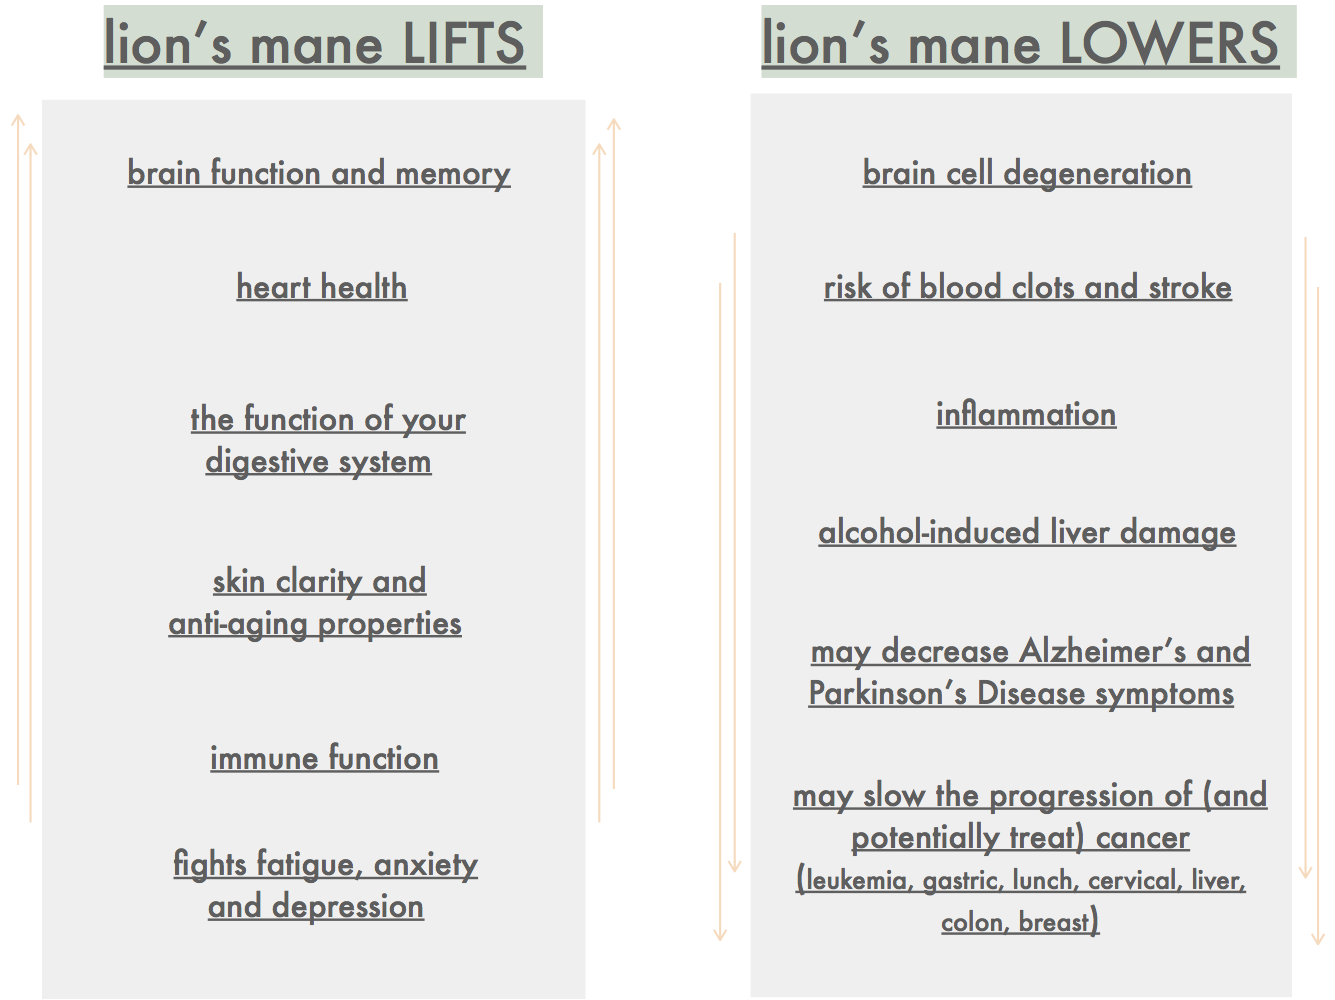 lionsmane_LOWER:LIFT v2.png